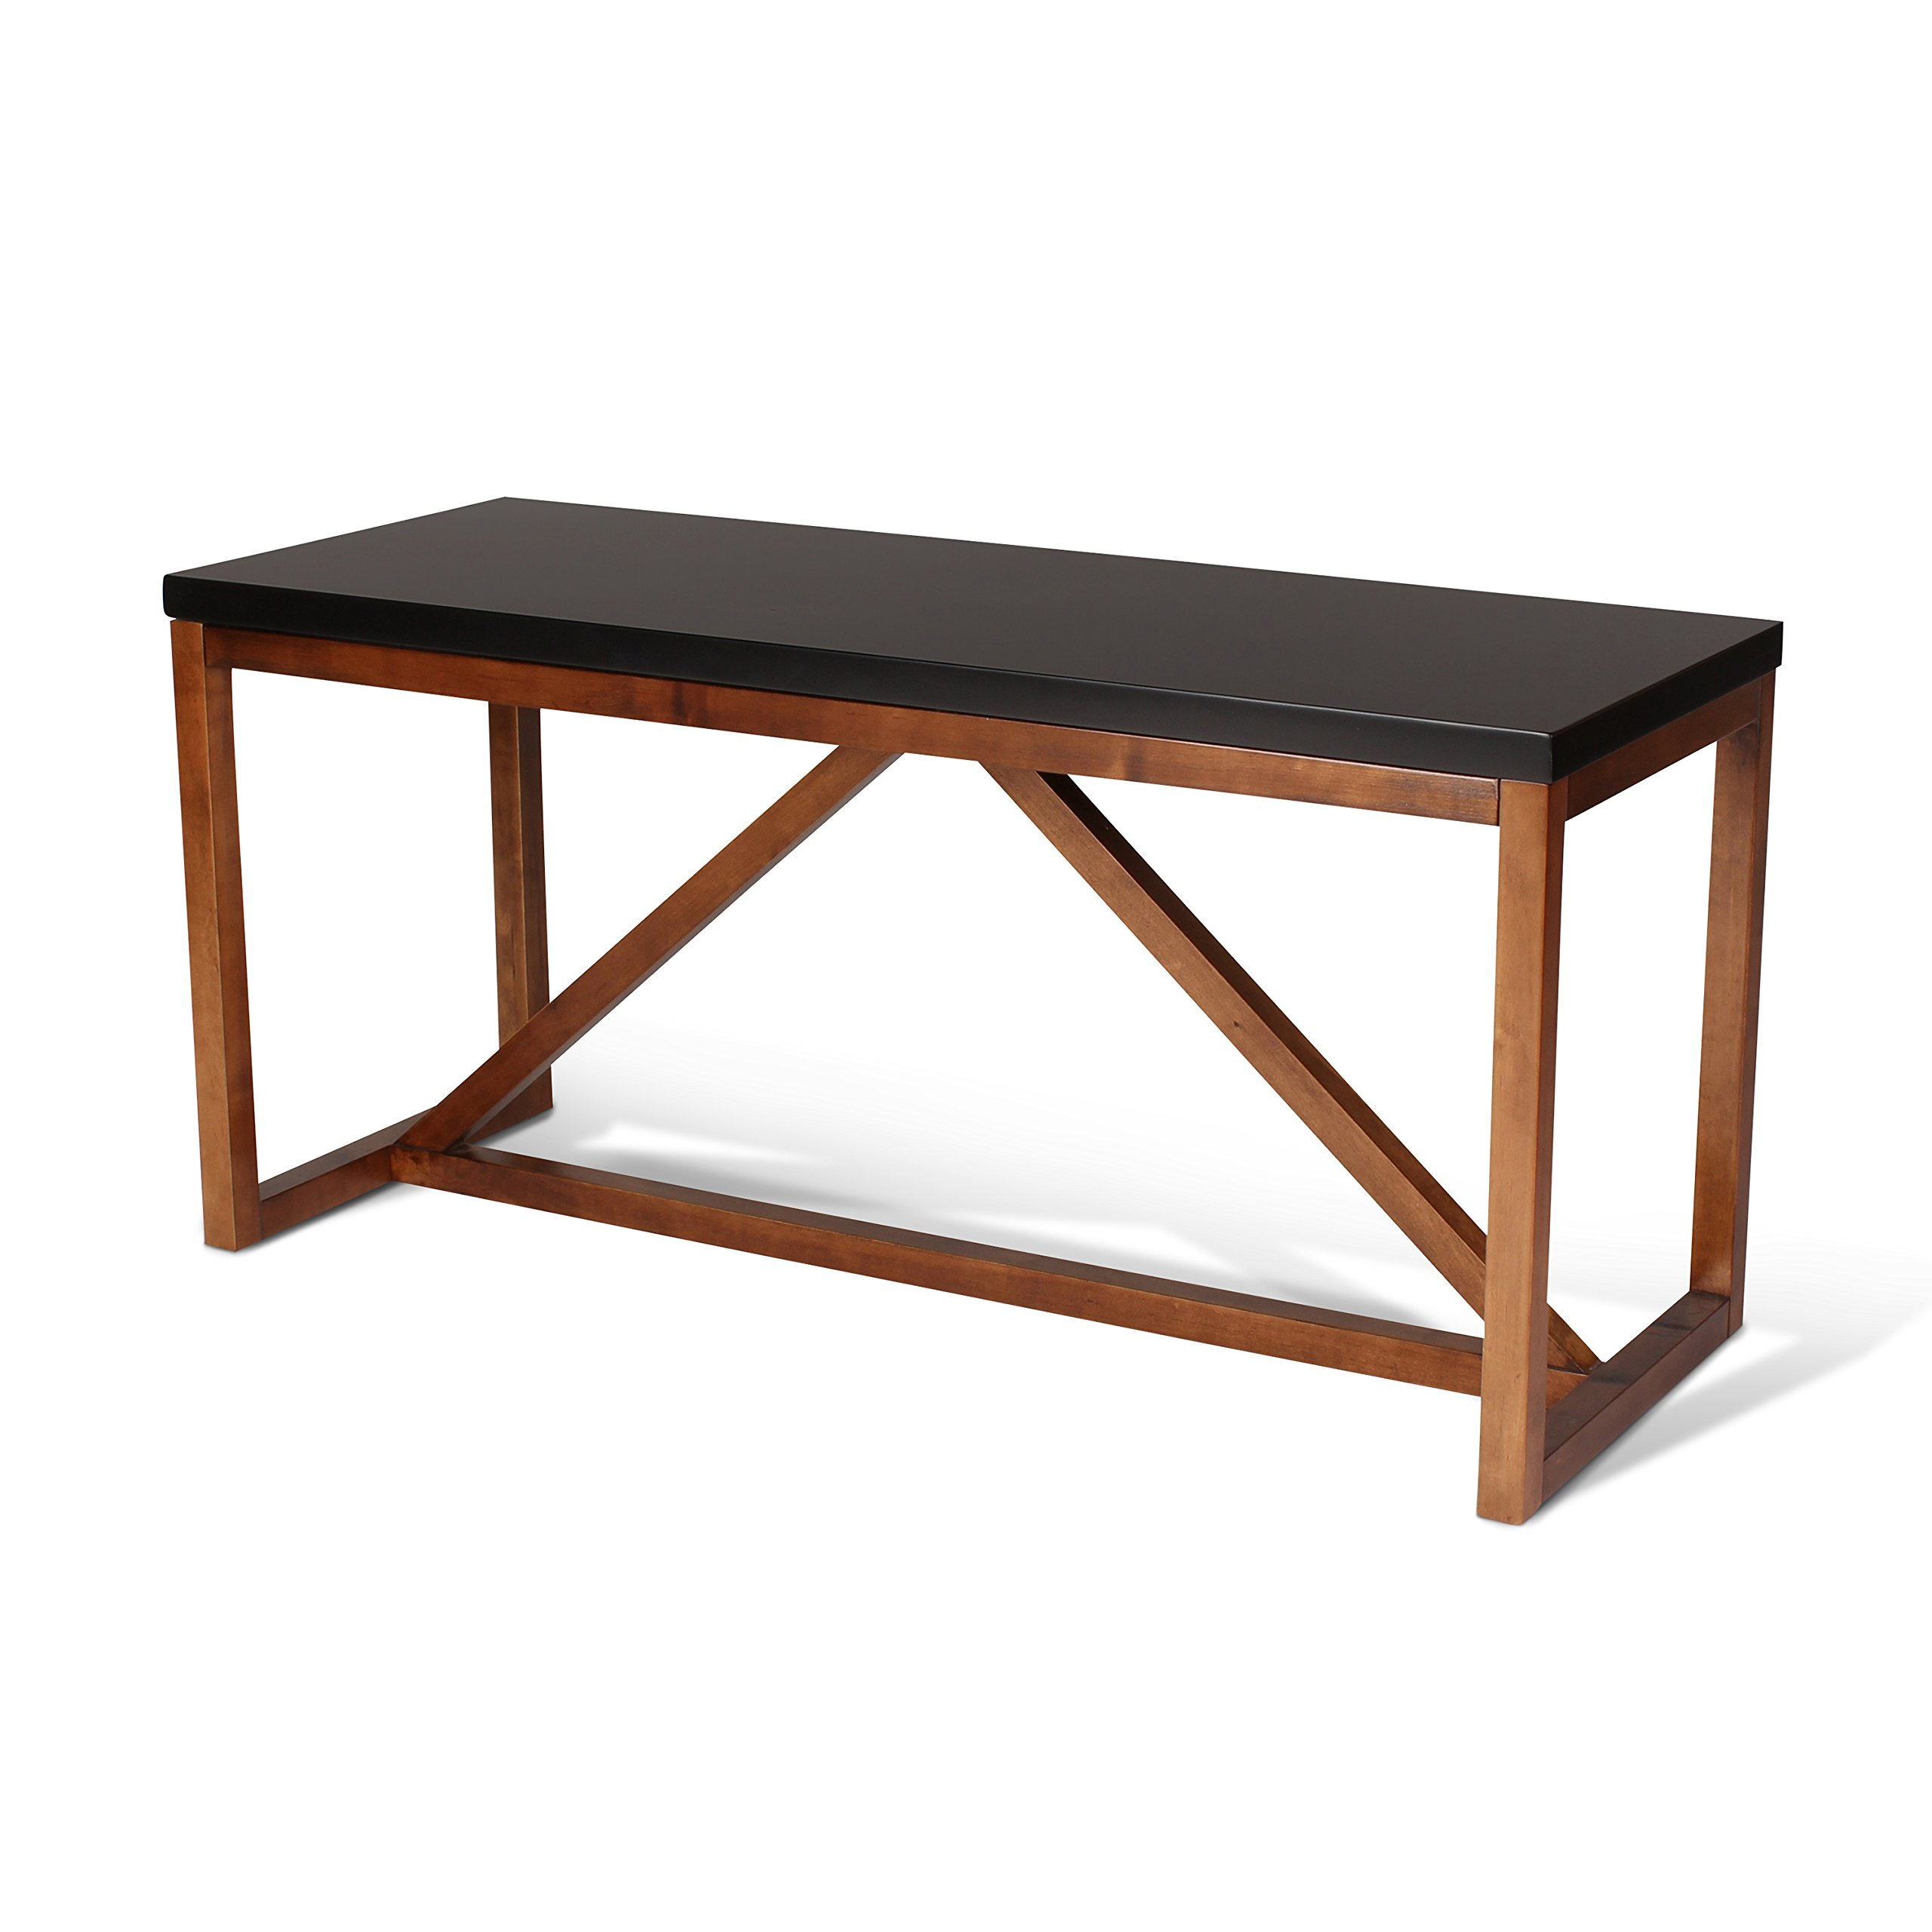 Kate and Laurel Kaya Two-Toned Wood Bench with Black Top and Walnut Brown Base